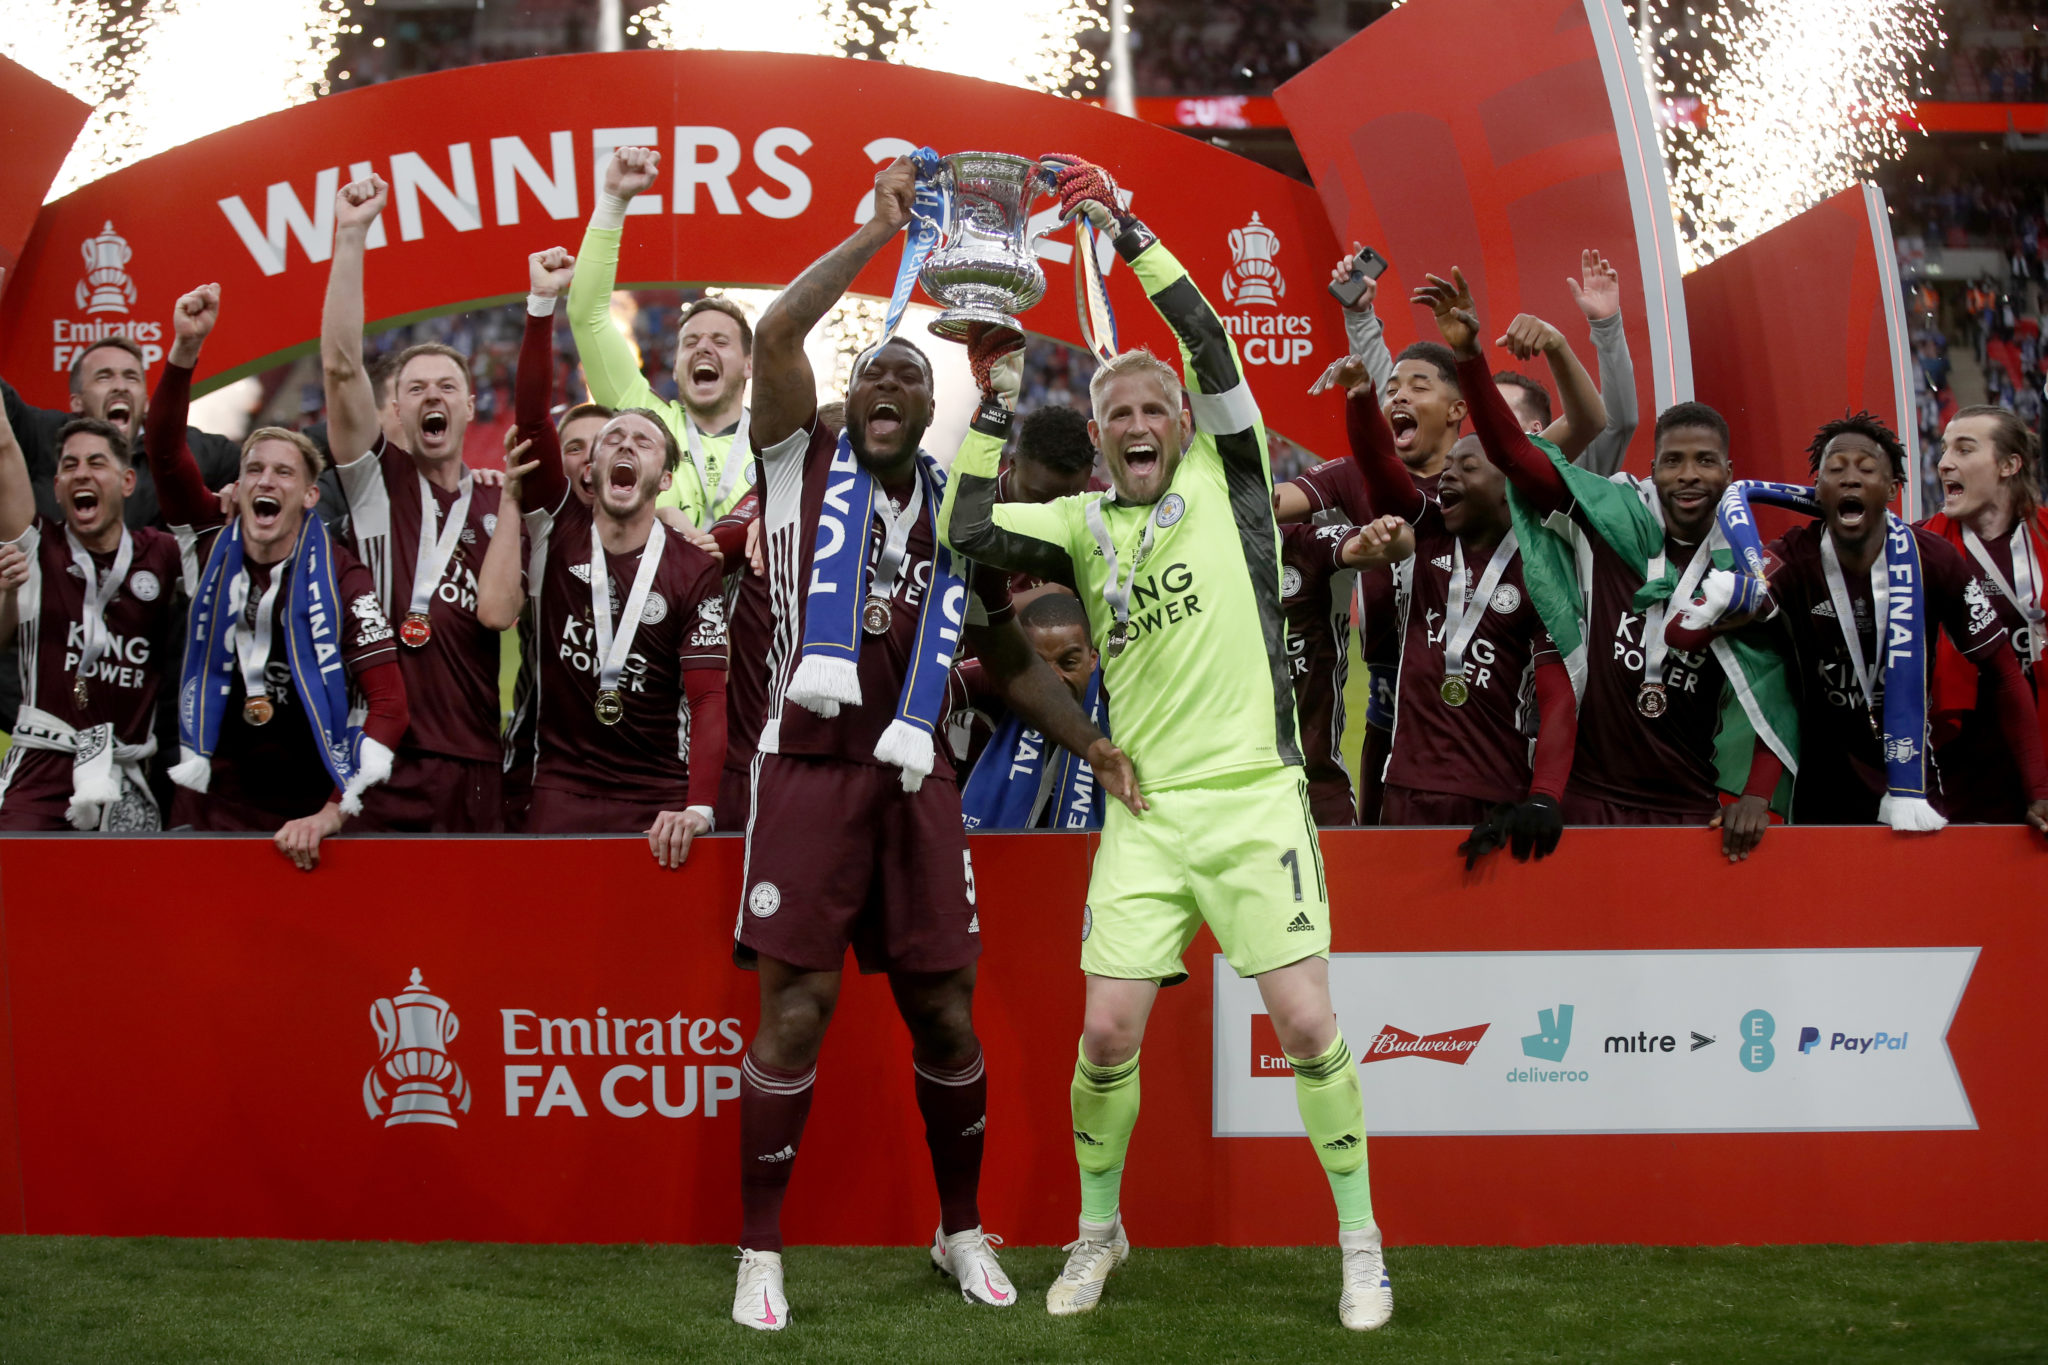 Leicester City's Wes Morgan (left) and Leicester City goalkeeper Kasper Schmeichel lift the trophy after the Emirates FA Cup Final at Wembley Stadium, London. Picture date: Saturday May 15, 2021.